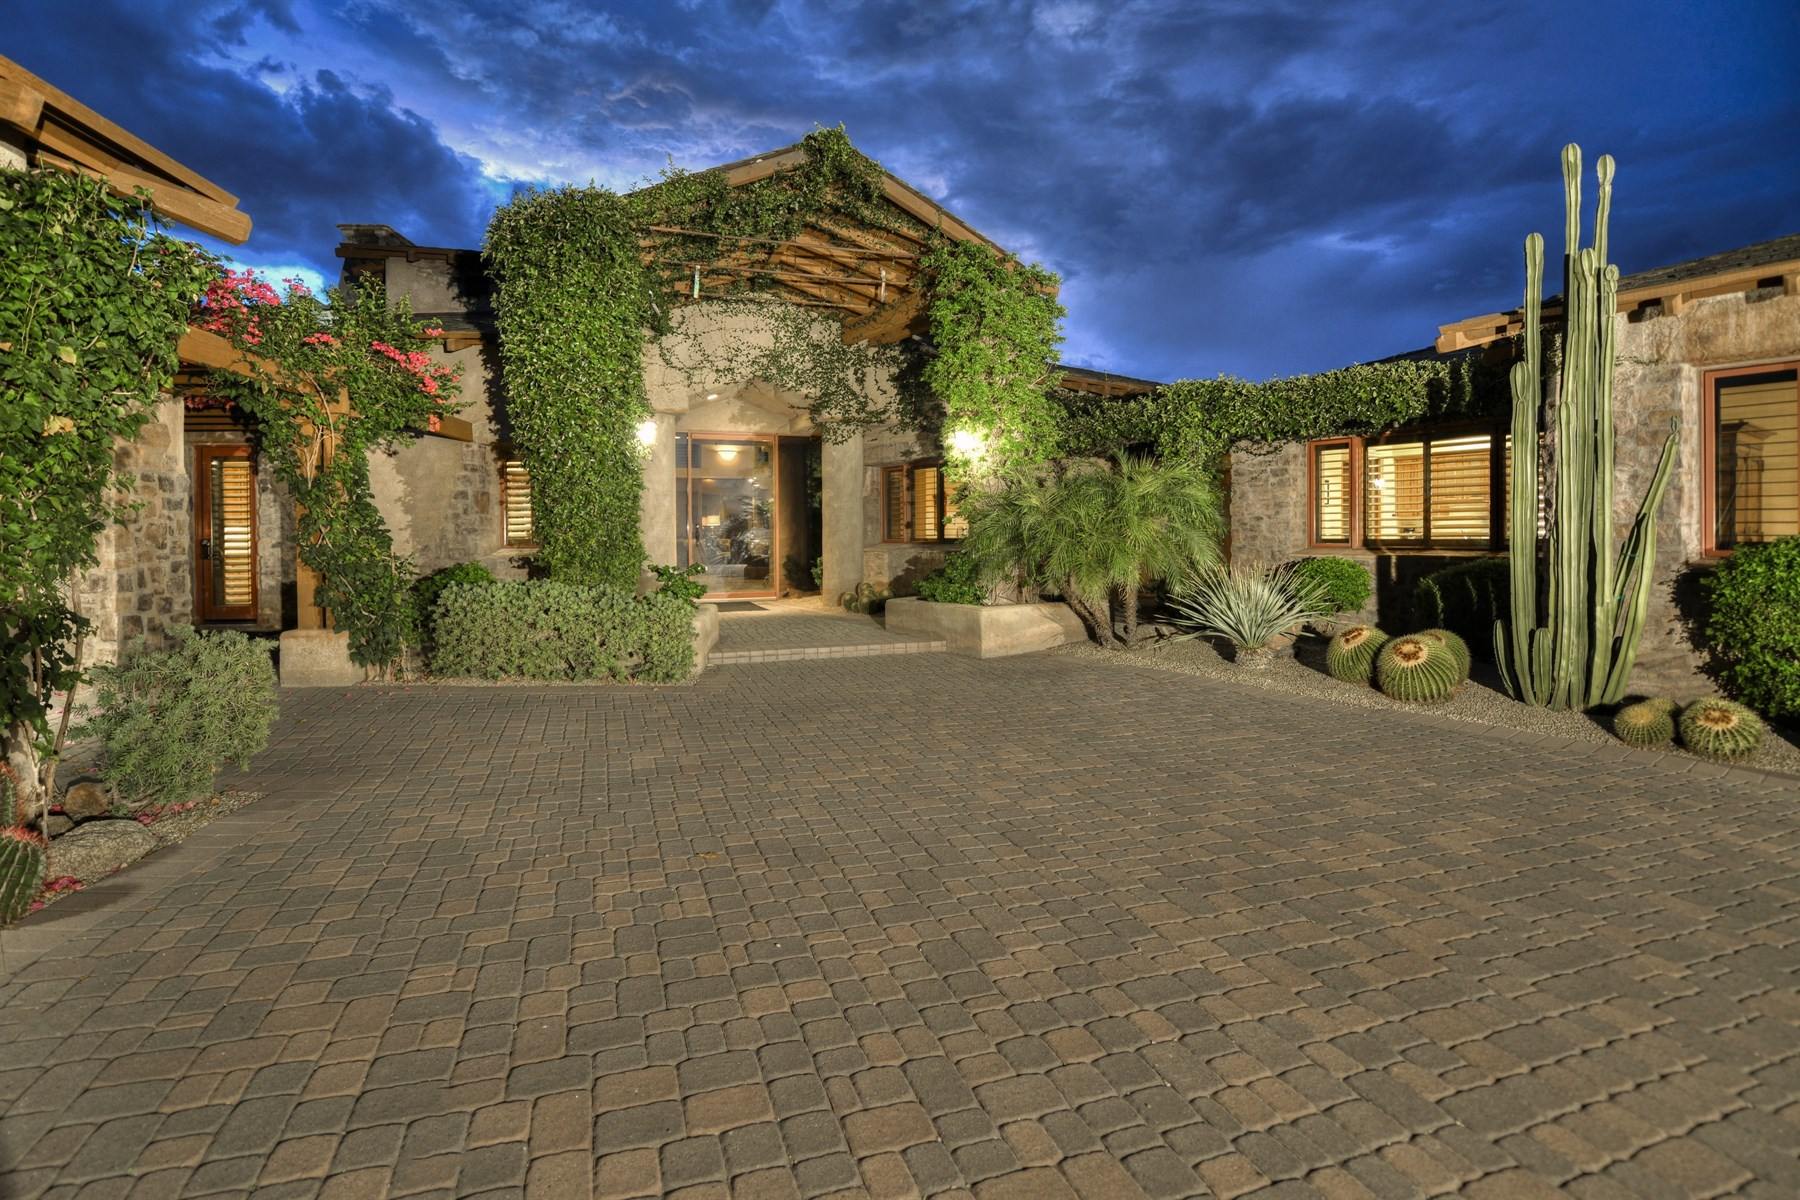 Single Family Home for Sale at Turnkey, Furnished - LaScala Villa in world-renowned Estancia 27962 N 100TH PL 96 Scottsdale, Arizona, 85262 United States